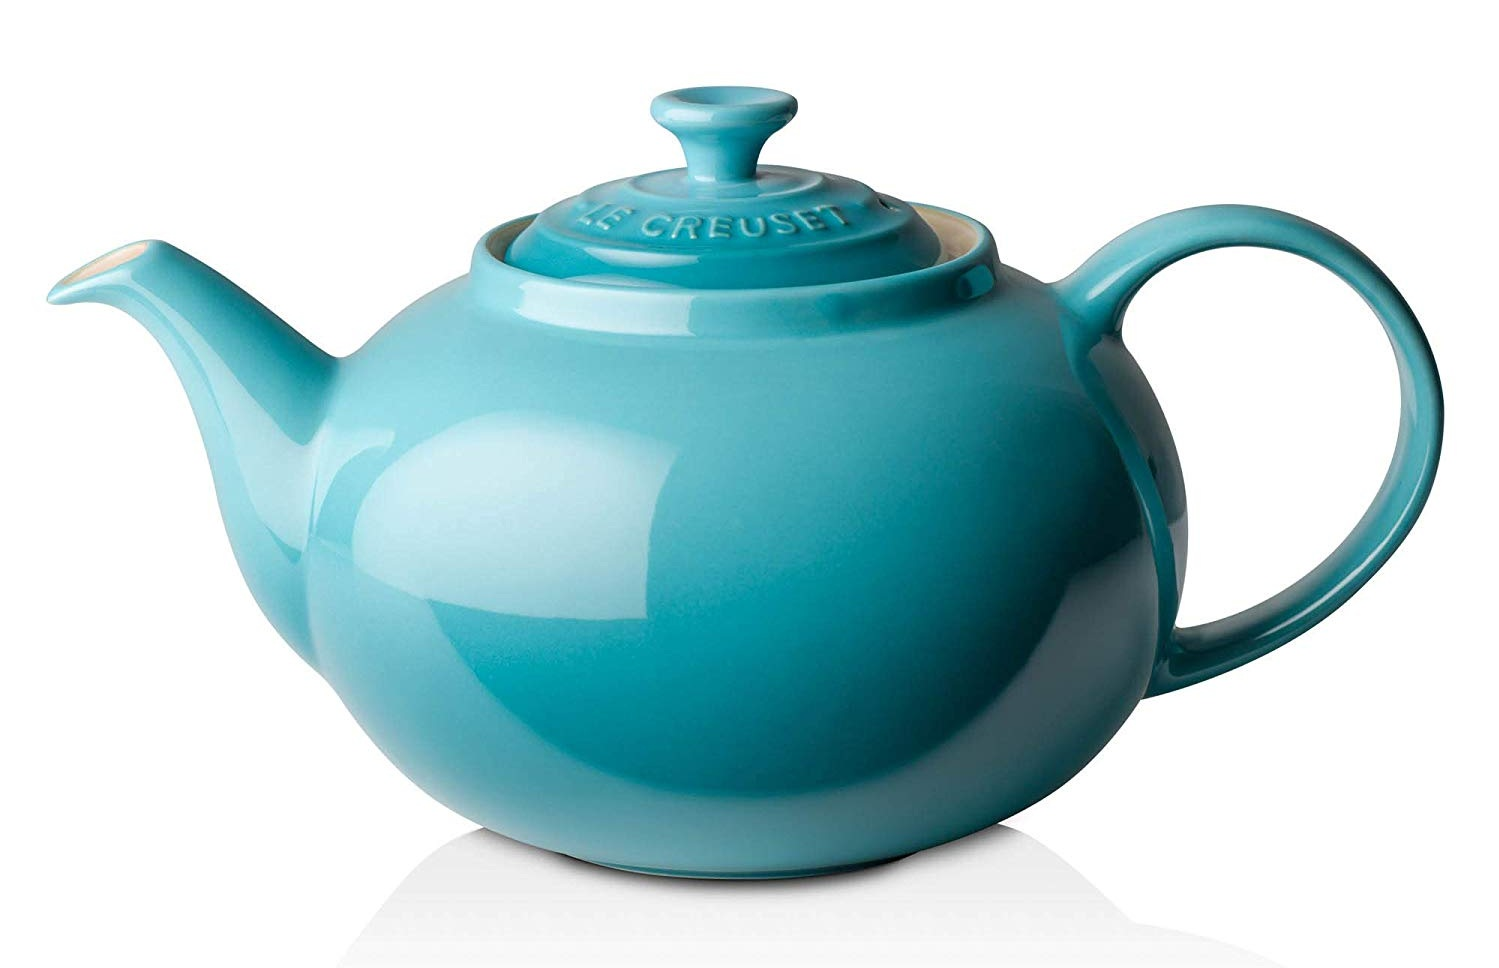 My Favorite Teapot